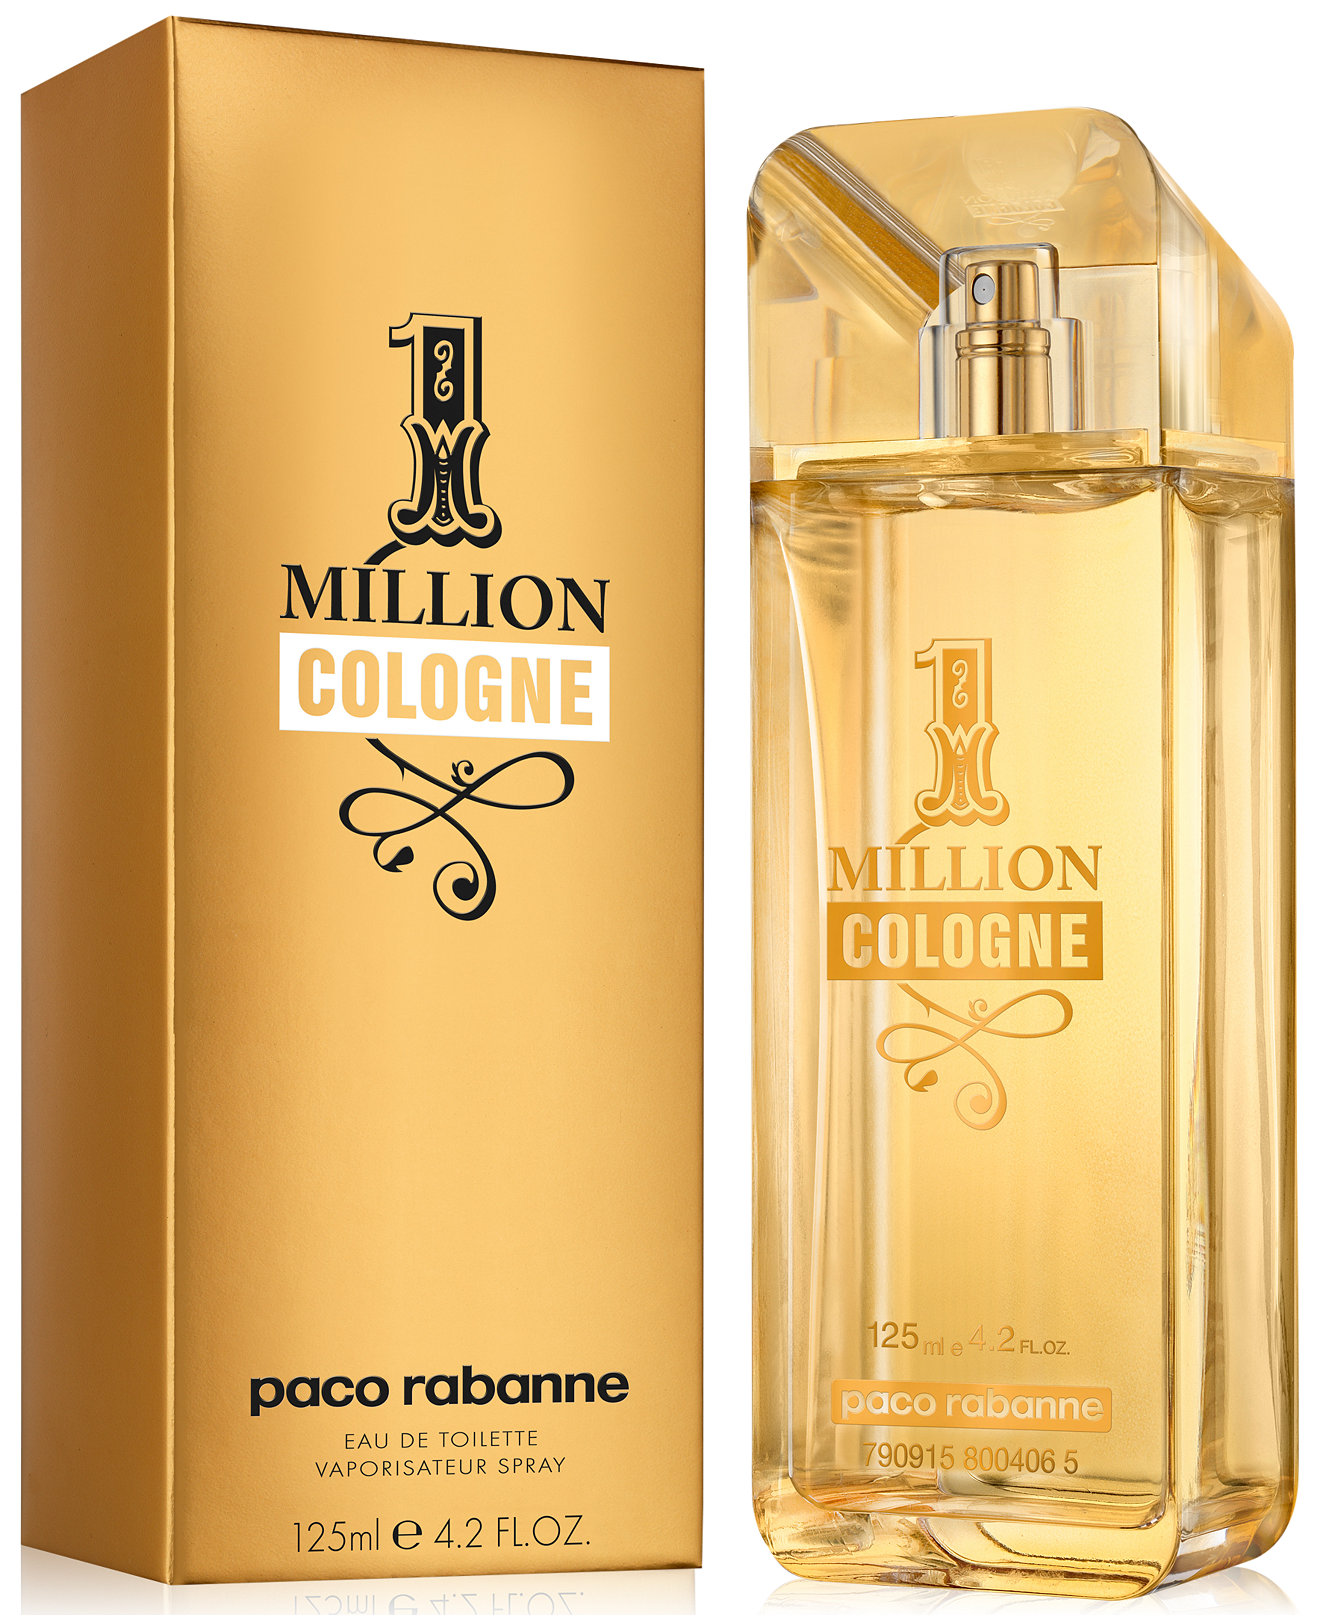 1 million paco rabanne duty free